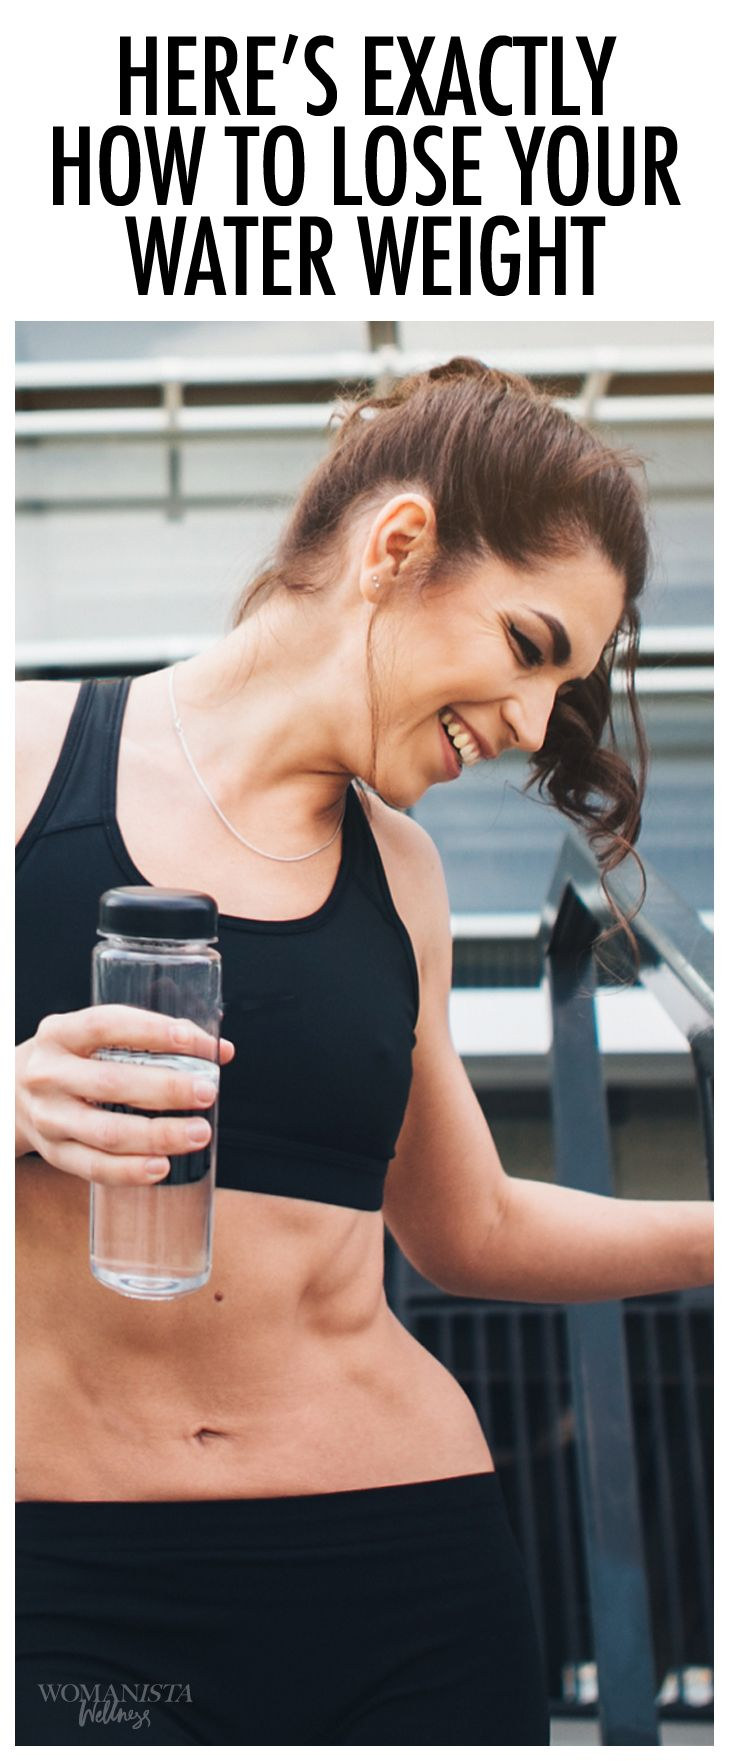 Exactly how to lose your water weight